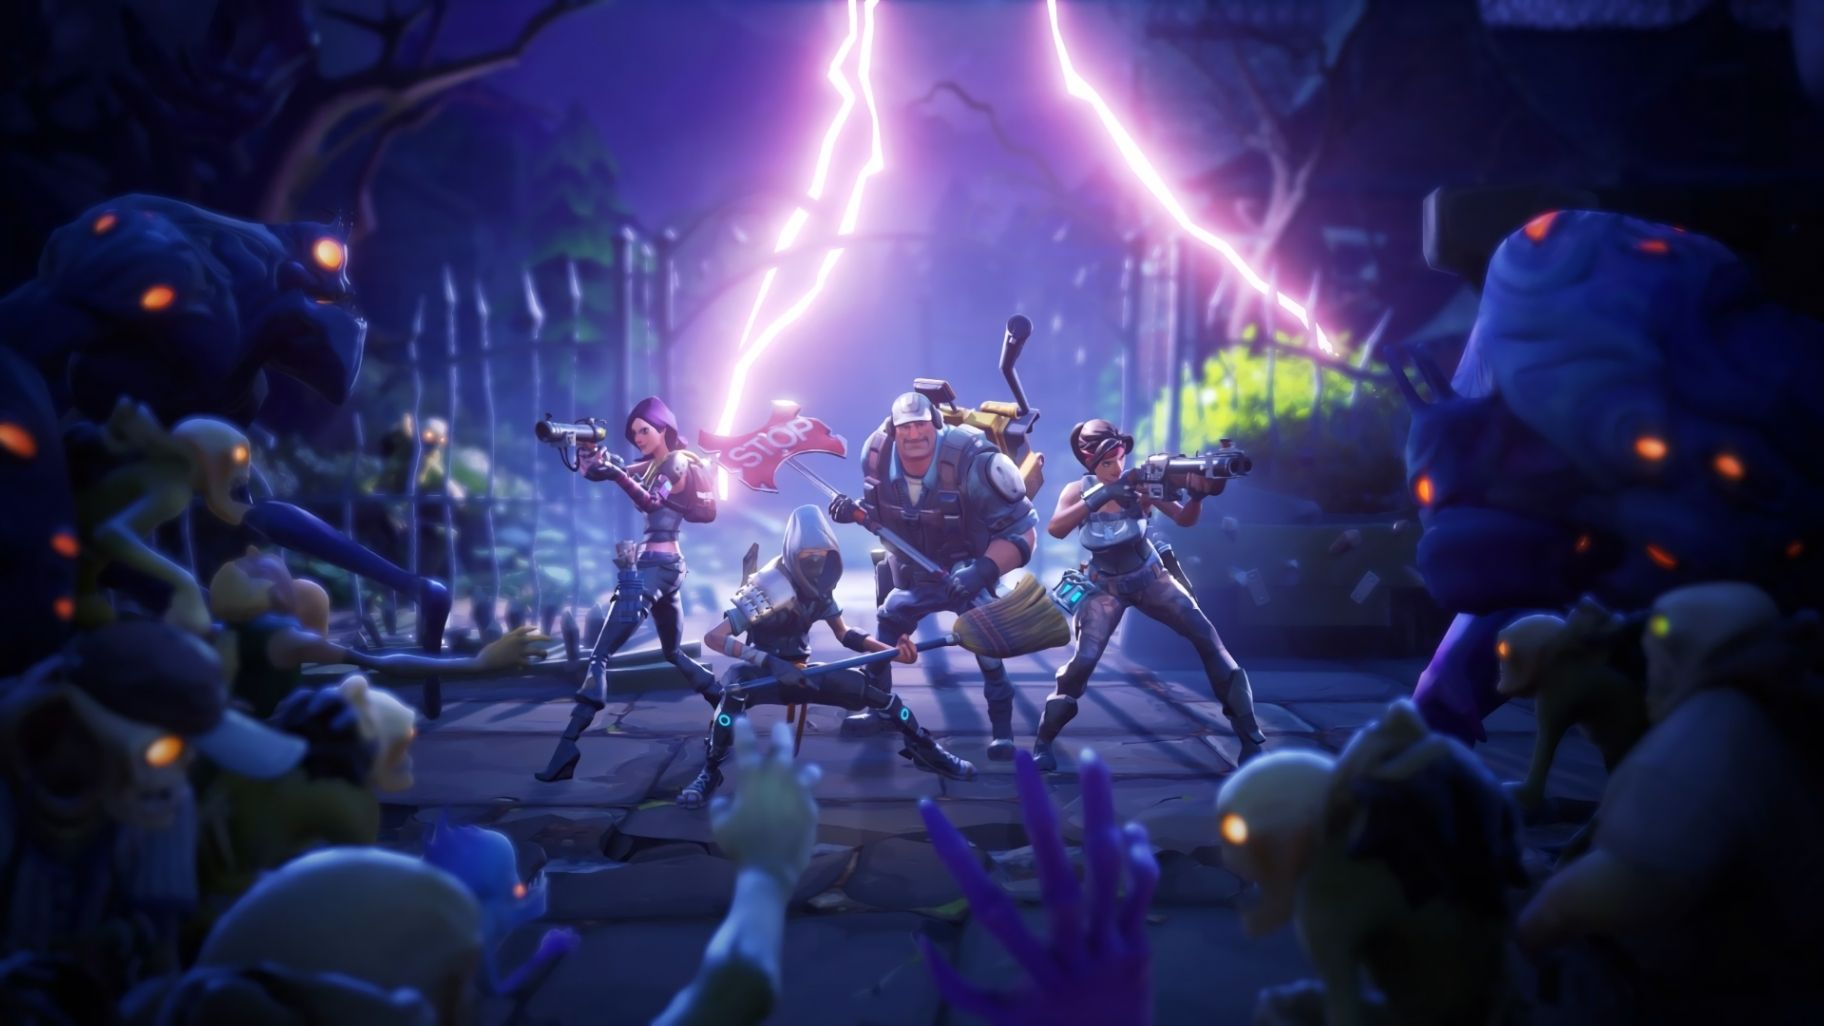 Image Result For Hd Fortnite Wallpapers Fortnite Cinematic Trailer Epic Games